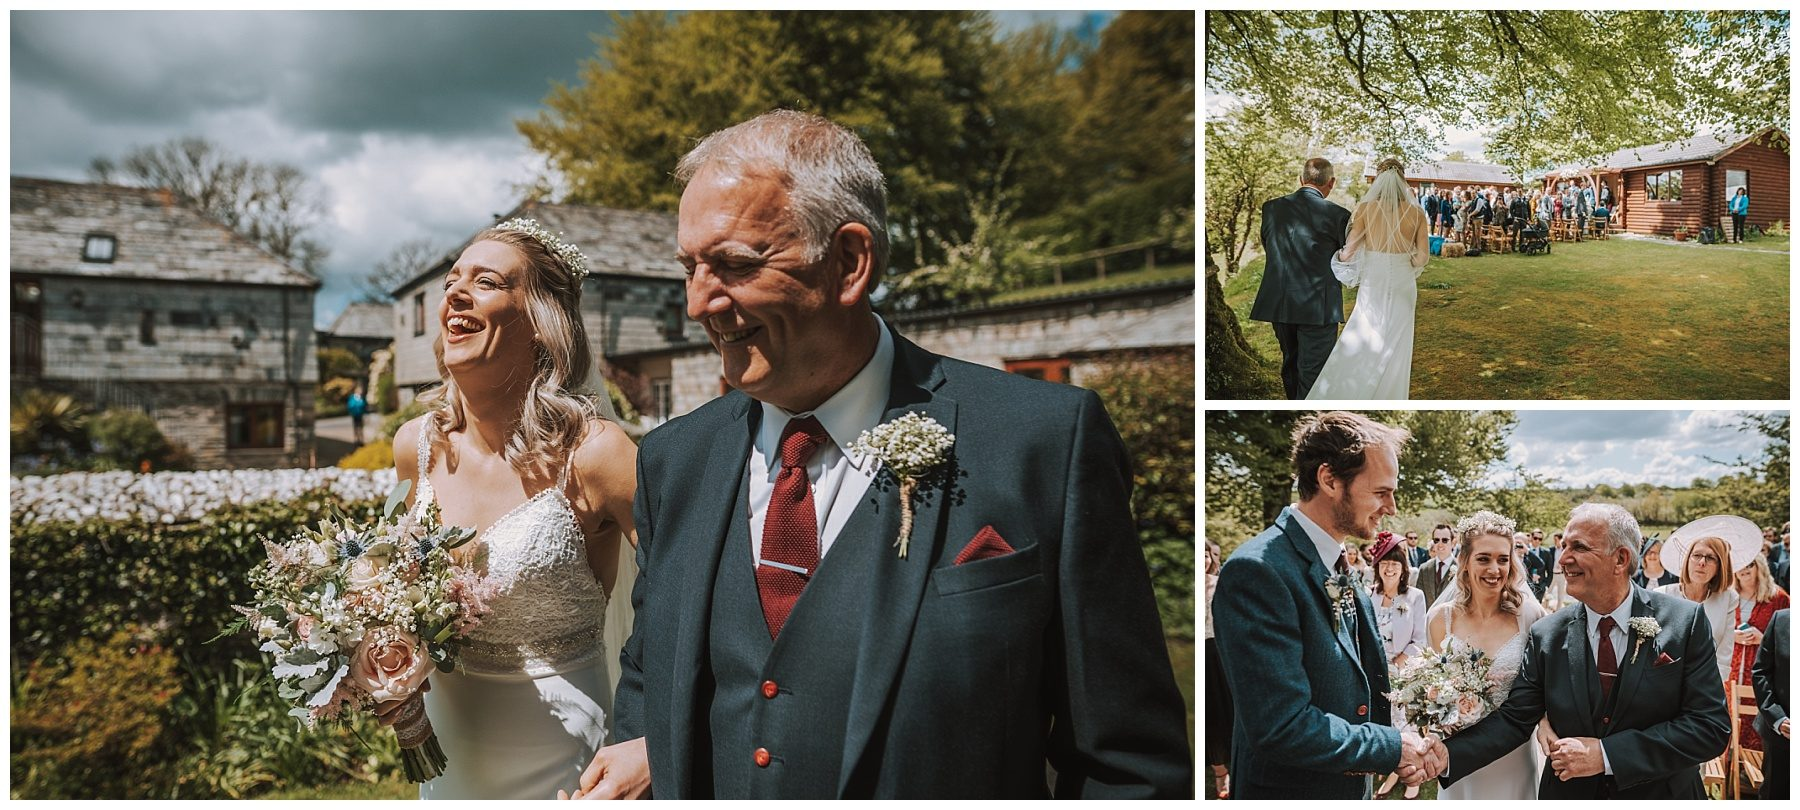 Bride and father walking wedding cornwall photographer